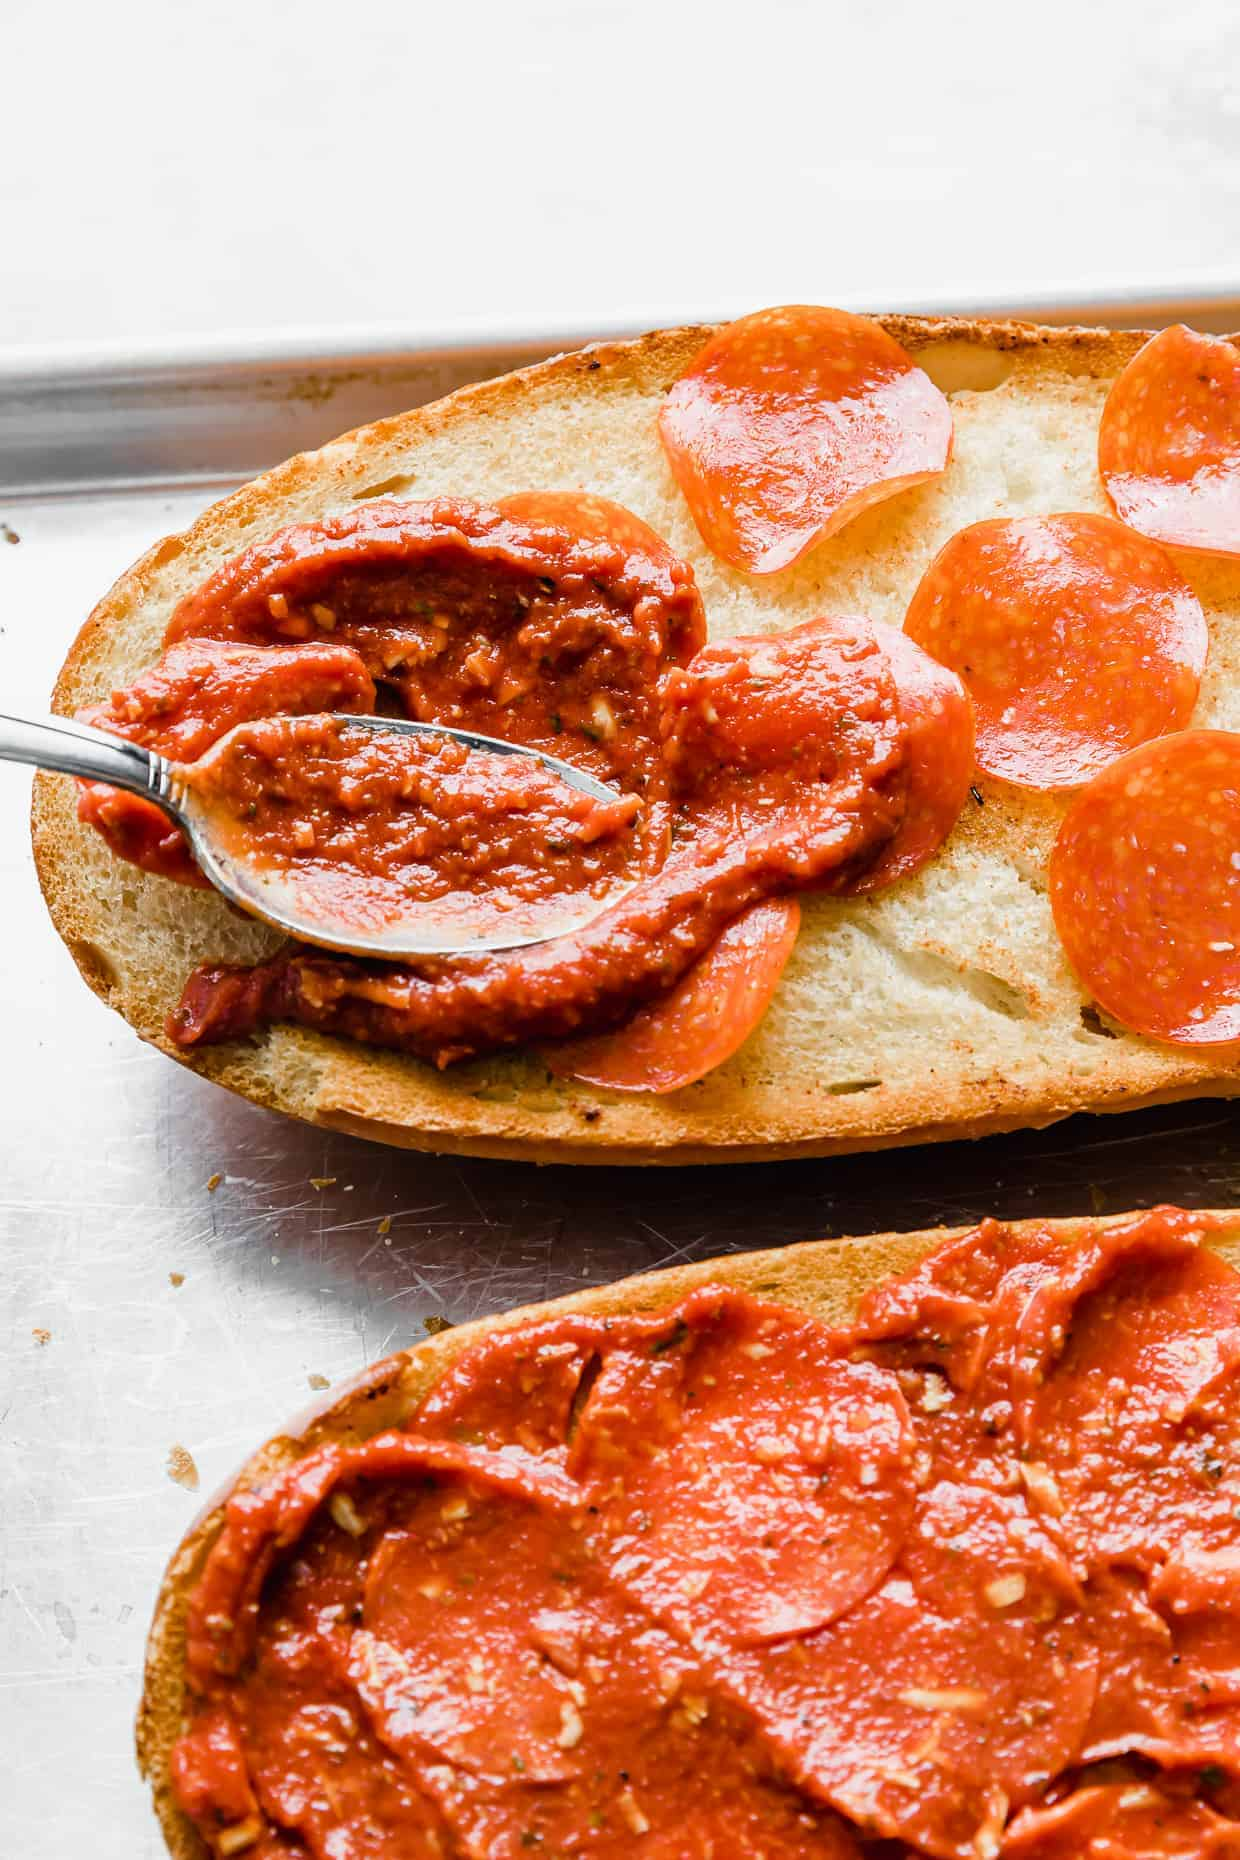 A spoon spreading pizza sauce overtop of pepperonis on a French bread loaf.